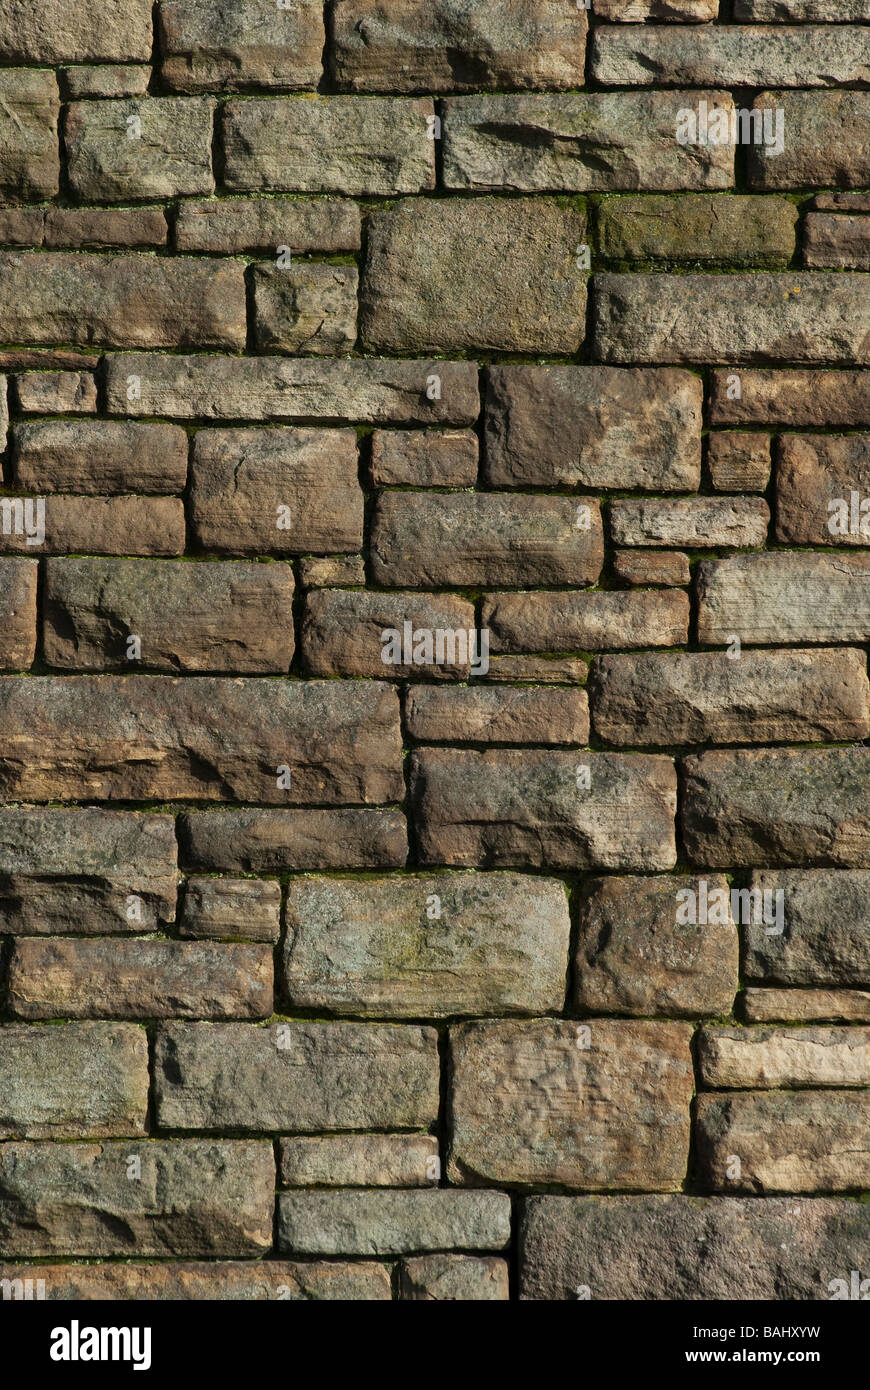 a wall made of natural stone bricks stock photo royalty free image 23751277 alamy. Black Bedroom Furniture Sets. Home Design Ideas